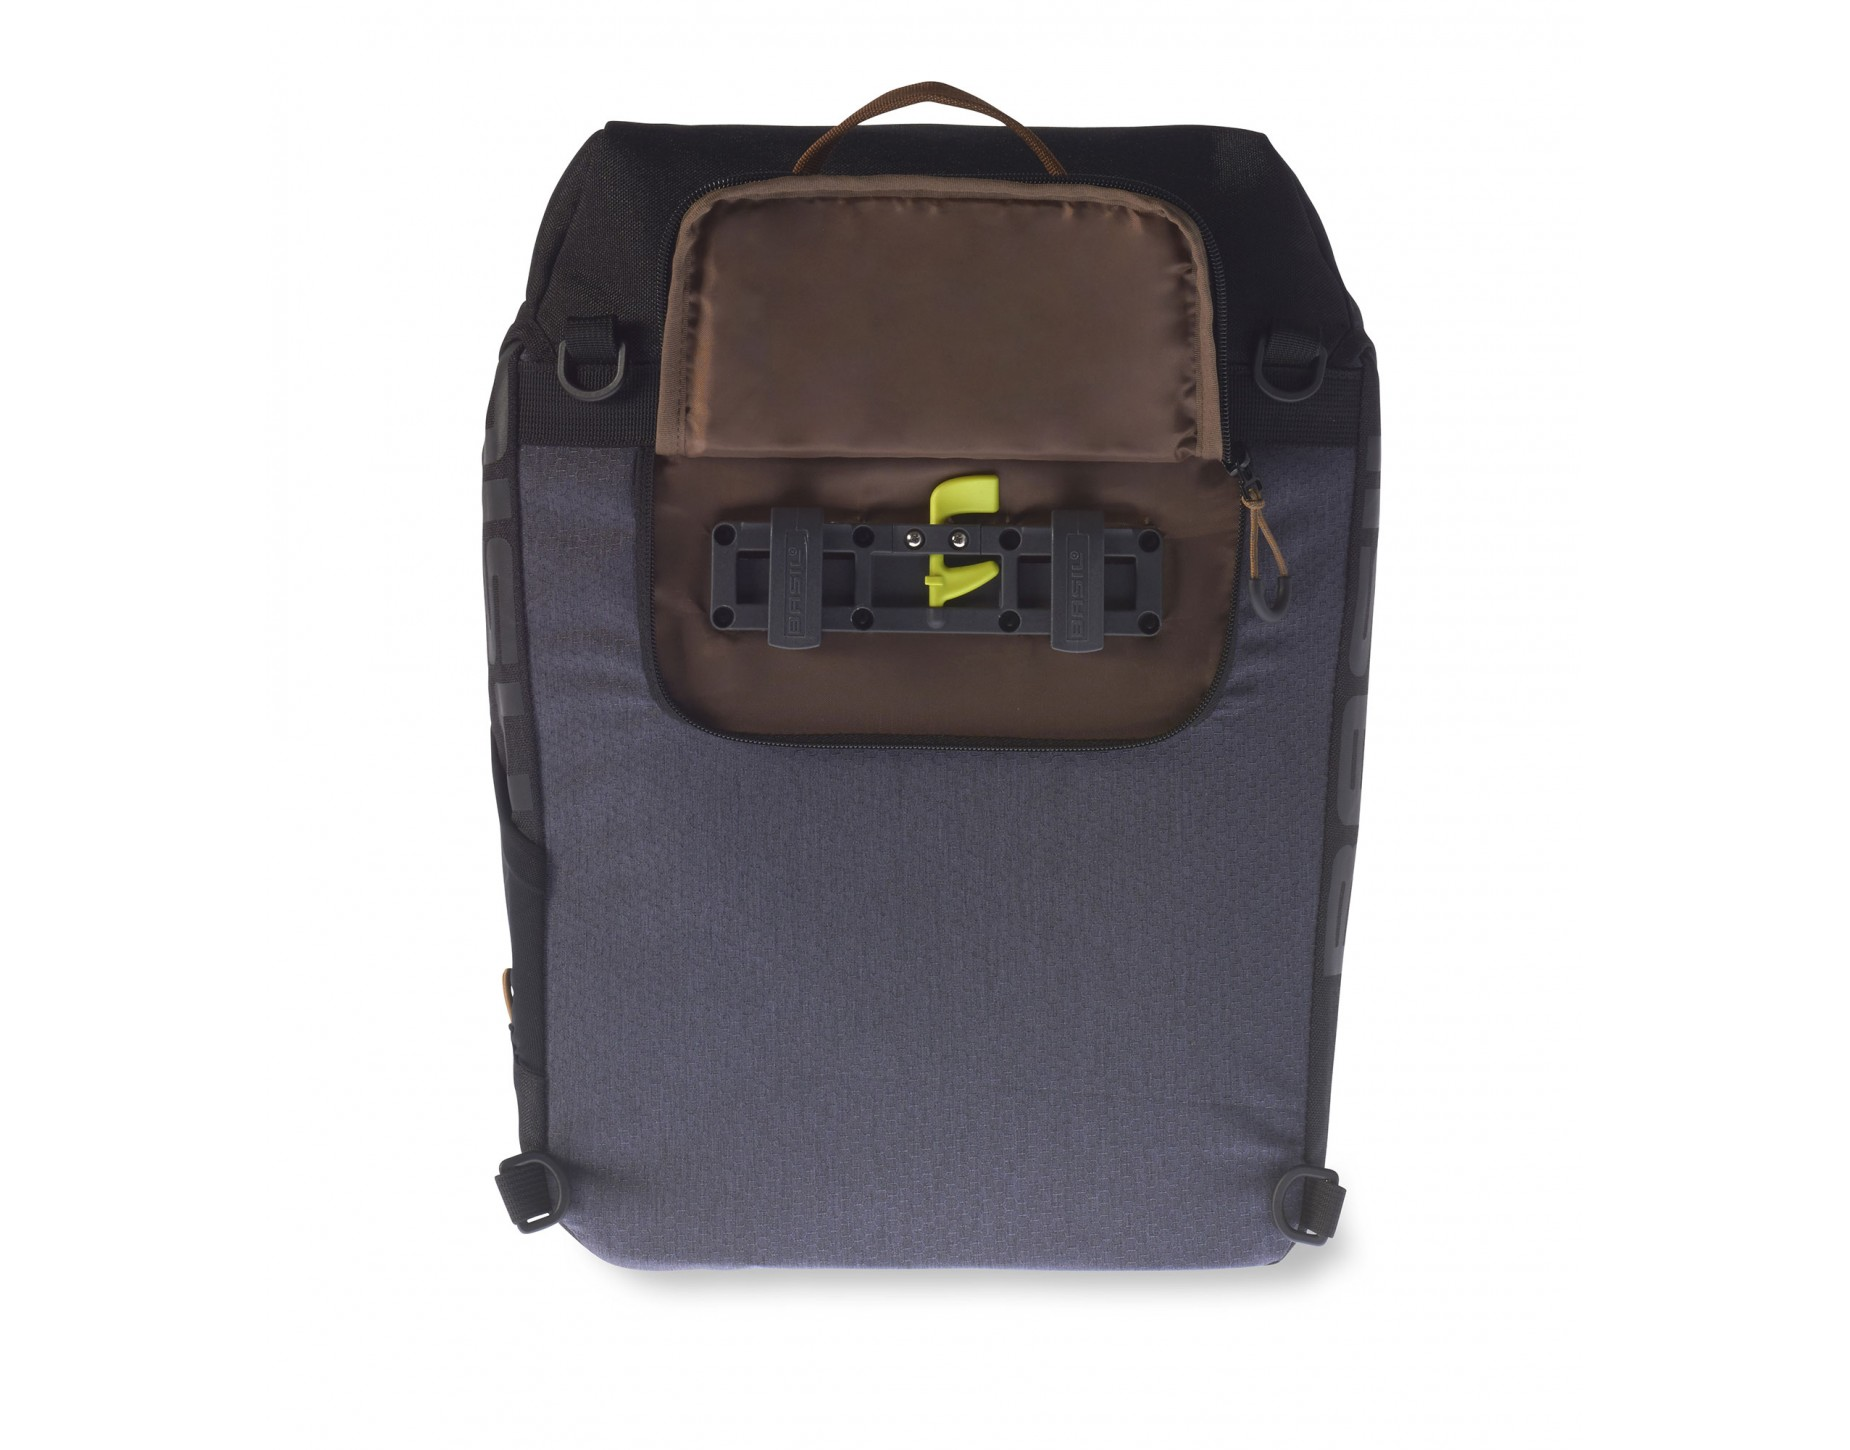 bag divorced singles Video 3 things to keep in a diaper bag news & experts news & experts  i sure hope we can get divorced  society is much more accepting of singles than even a .